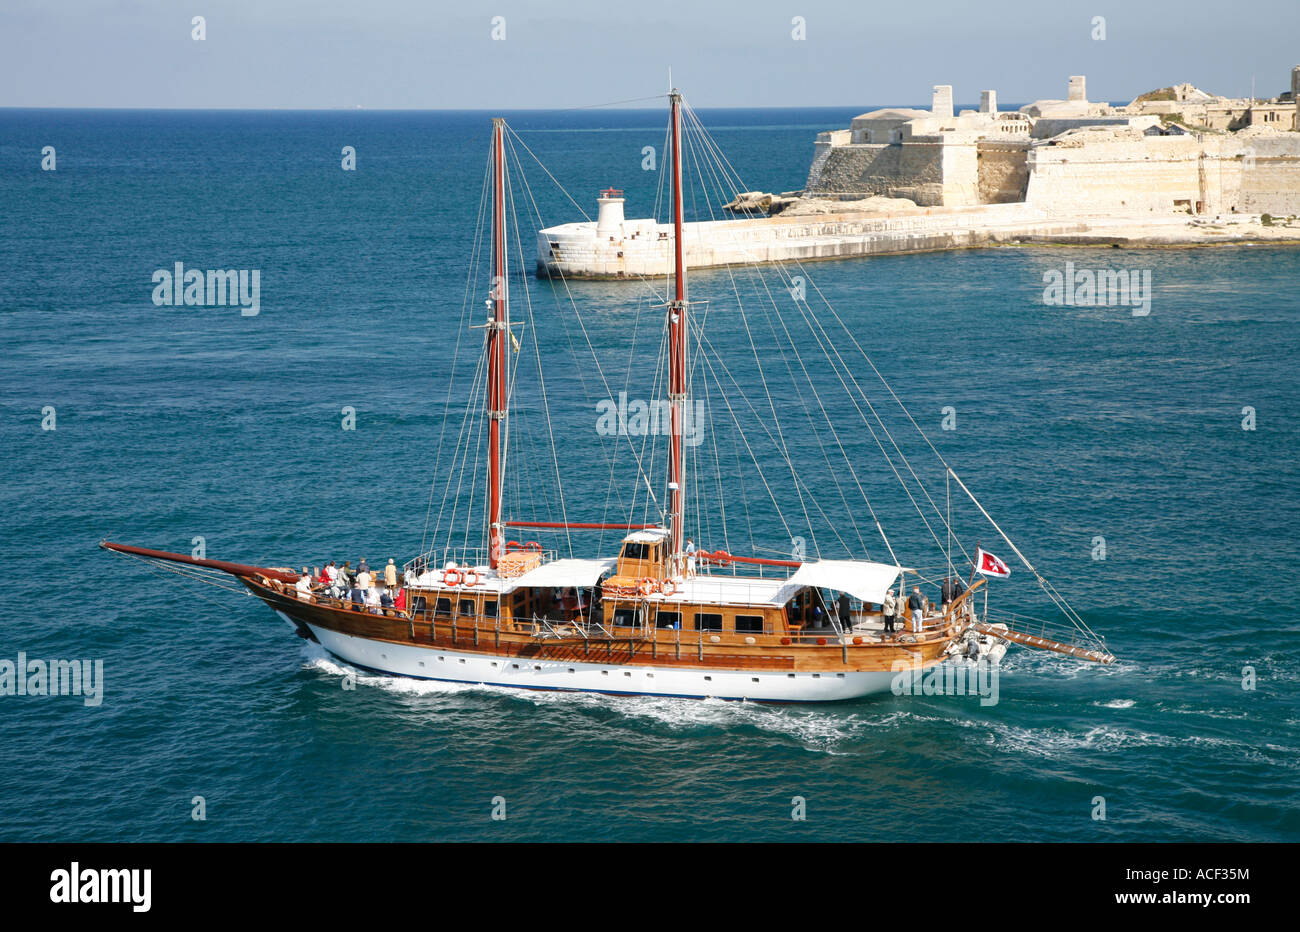 Twin masted sailing boat exiting Grand Harbour, Valletta, Malta Stock Photo